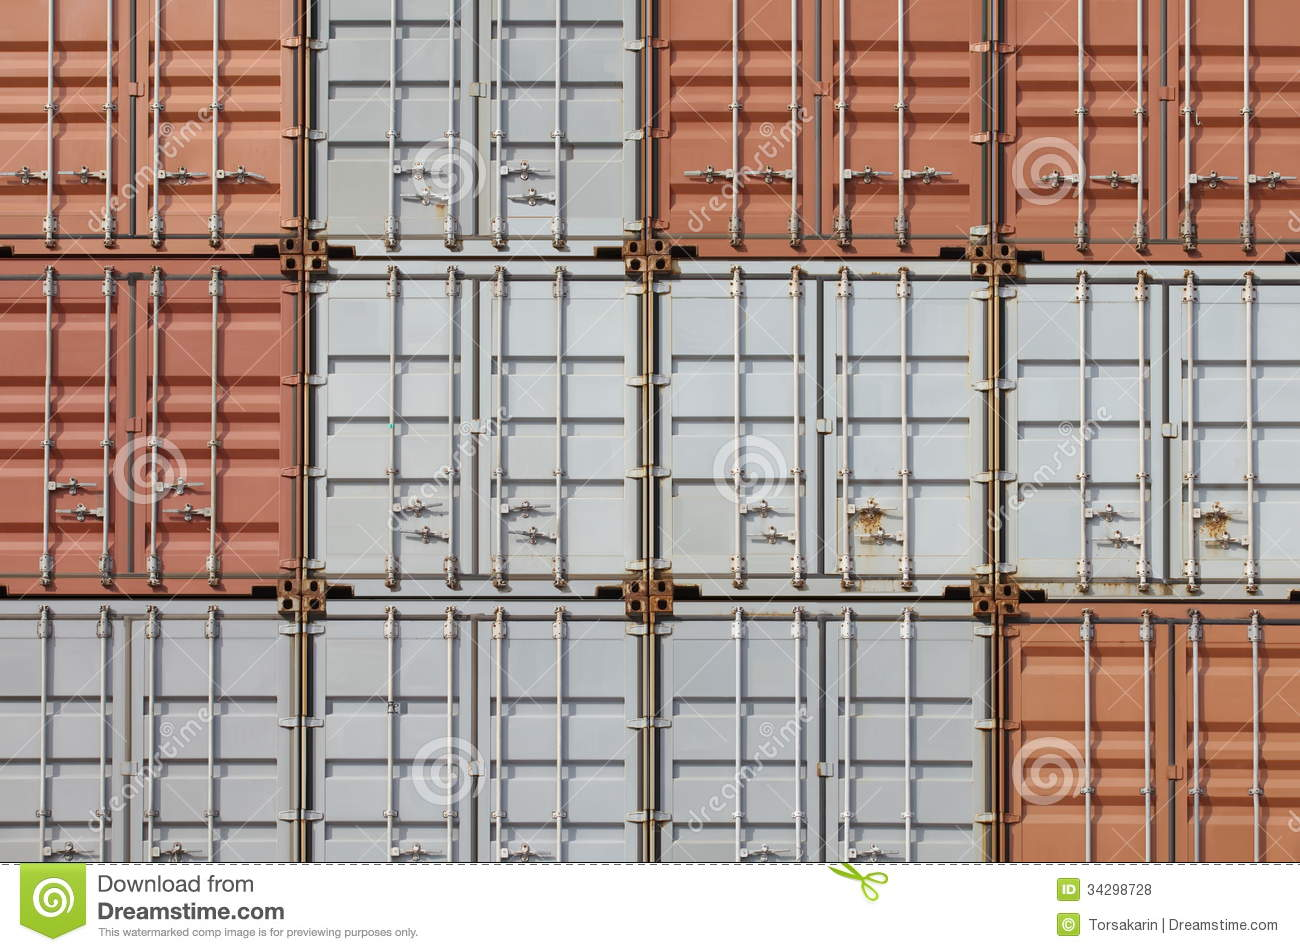 Background of industrail Freight shipping containers. 1300 x 952